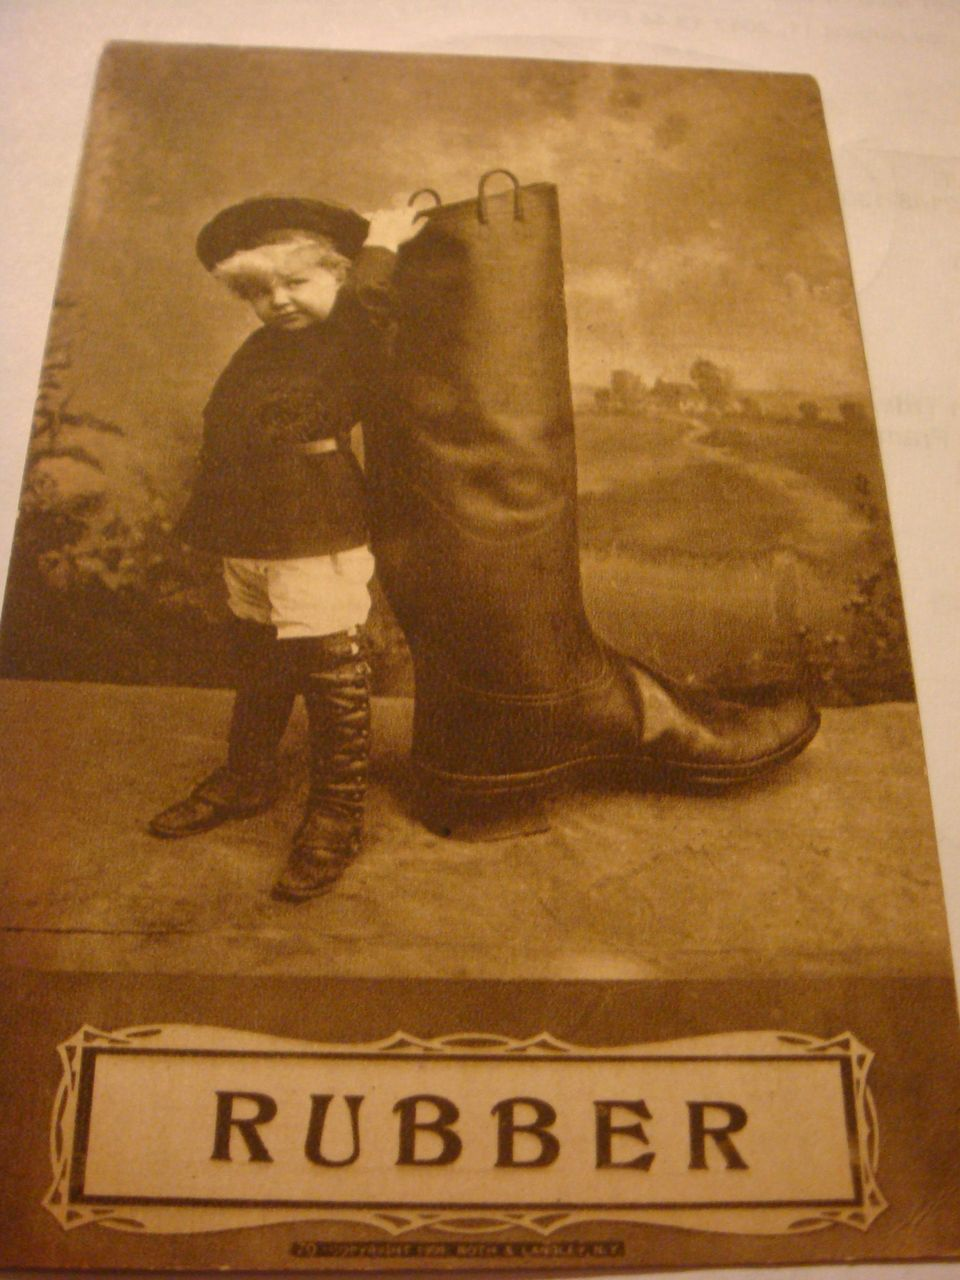 1909 Photo Postcard  Adorable Child High Top Boots, Coat Hat 'RUBBER' Boot C1909 Roth Langley, NY